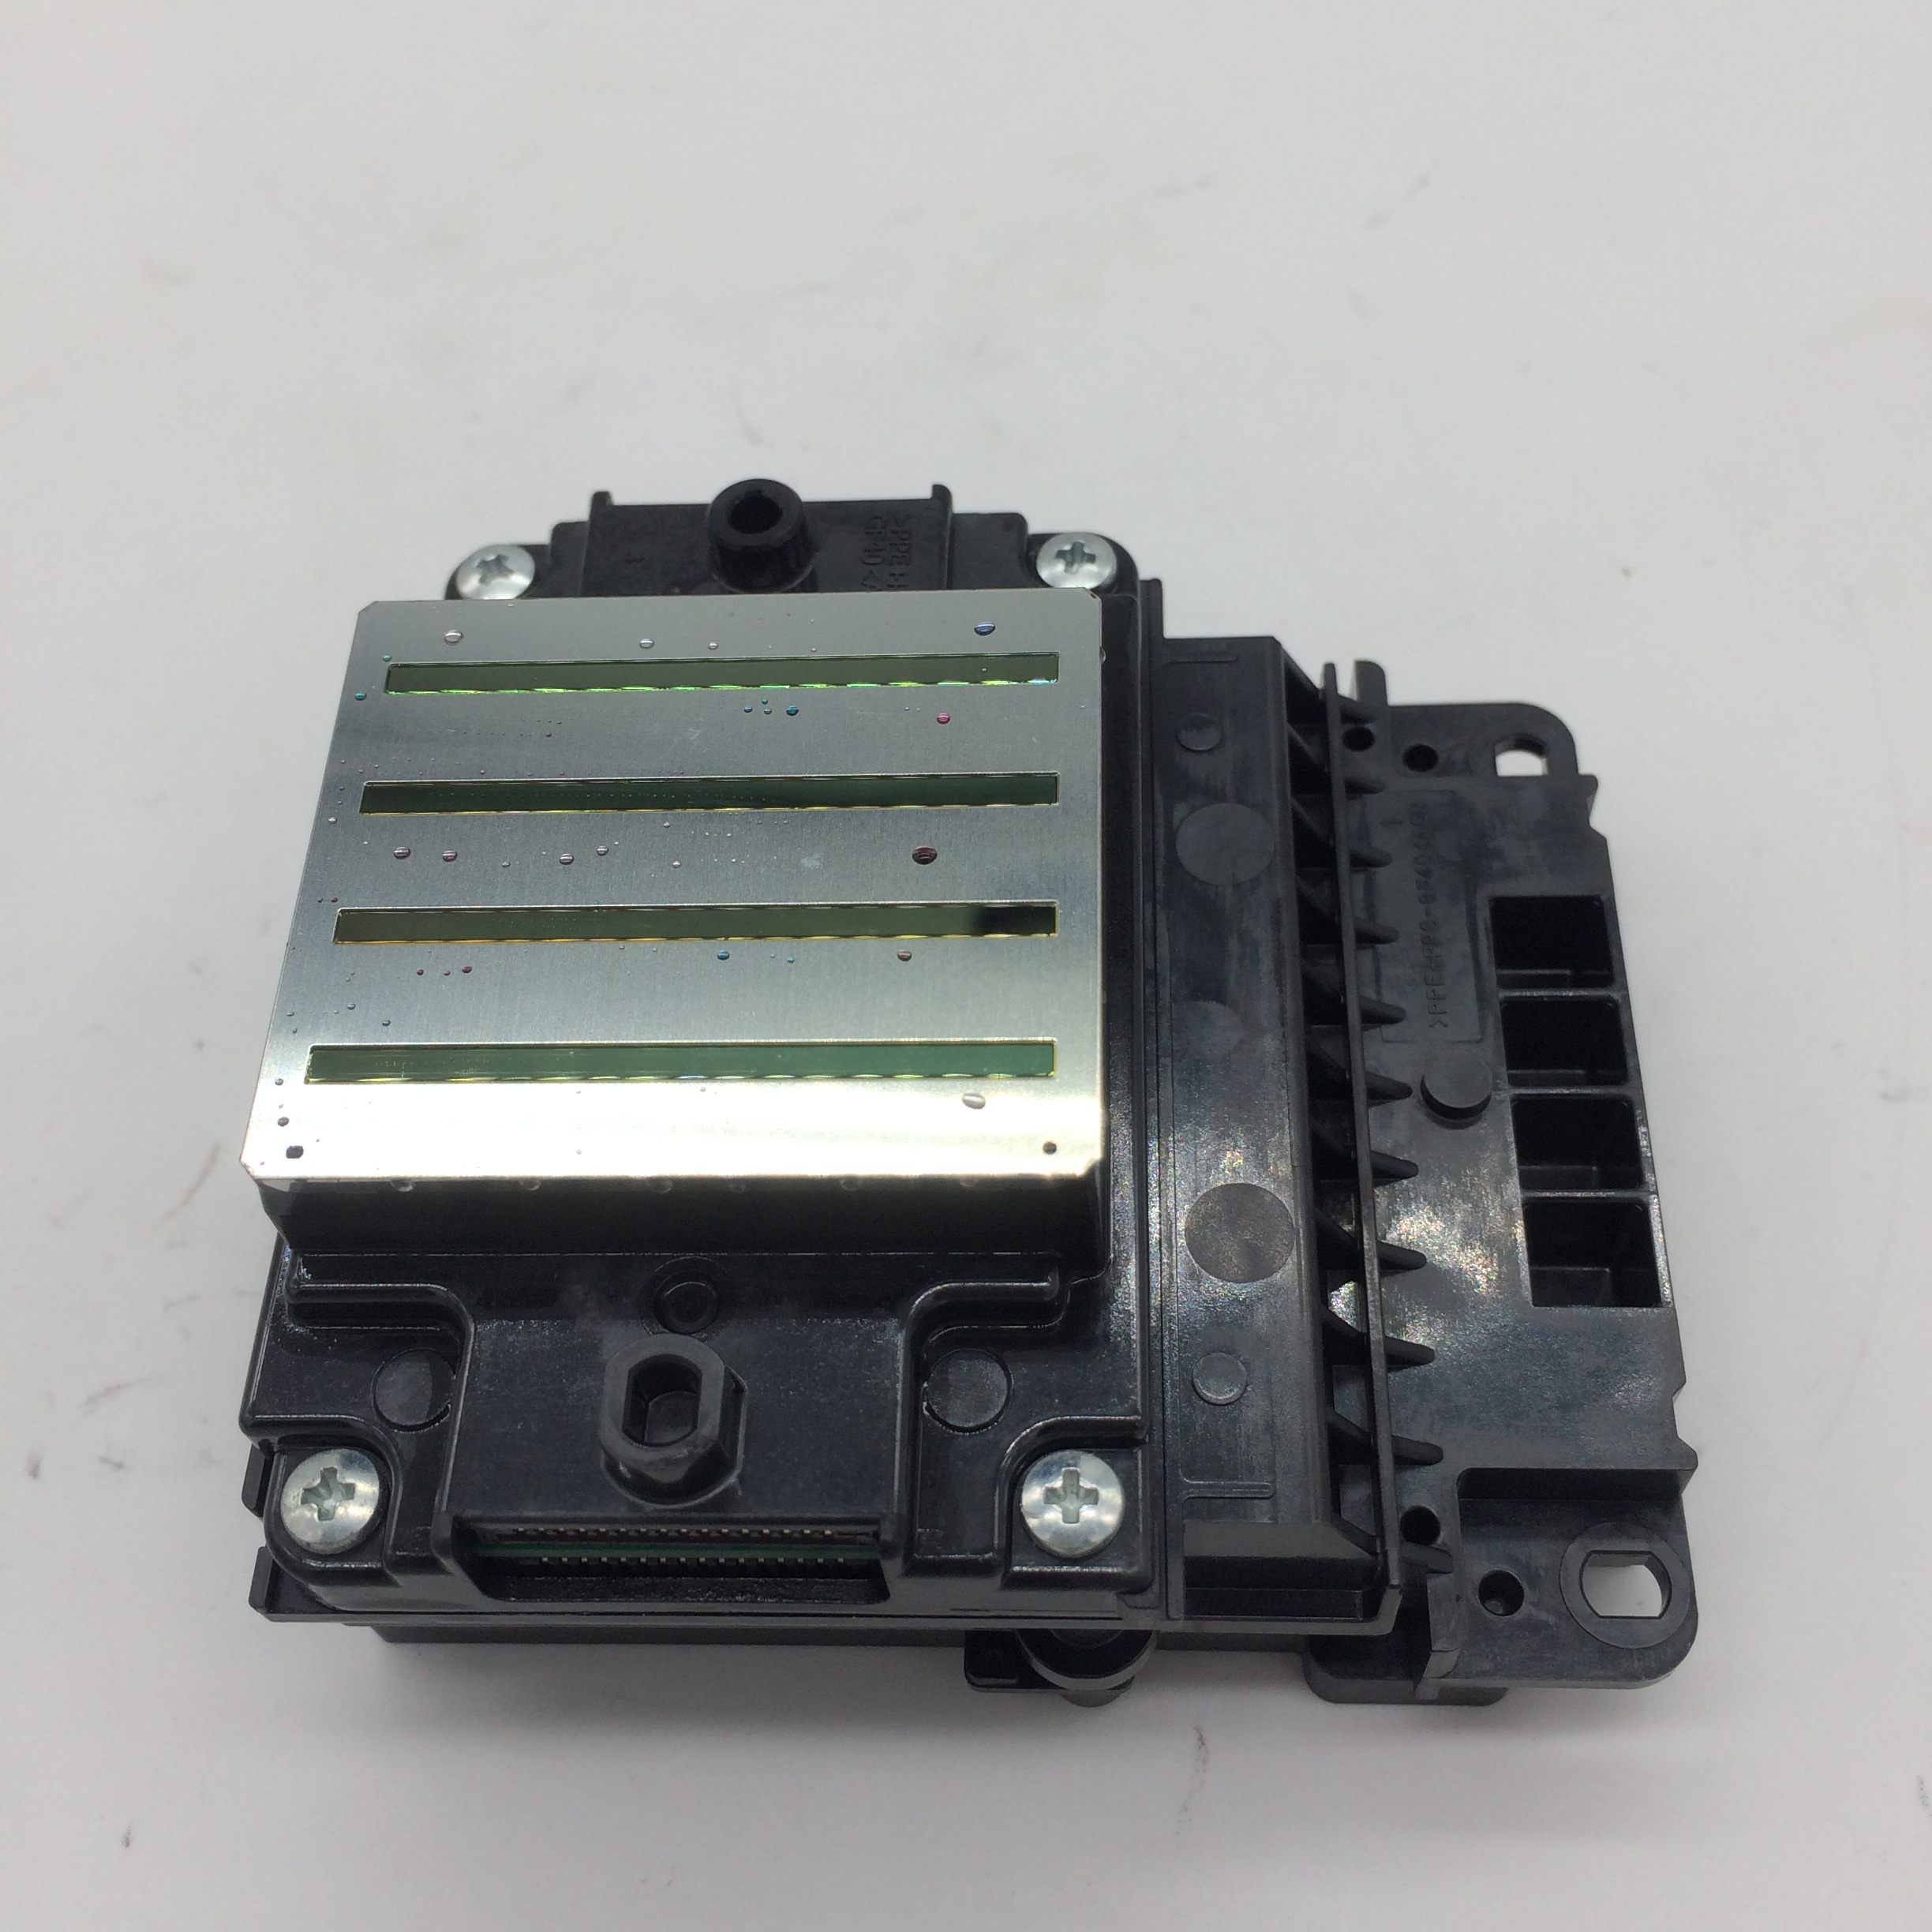 G6 second locked print head FA1610210 FOR INDUSTRIAL PRINTER WF5110 WF4630 5620 WF5113 WF5623 WF5620 5113 5110 5623 5620 printer